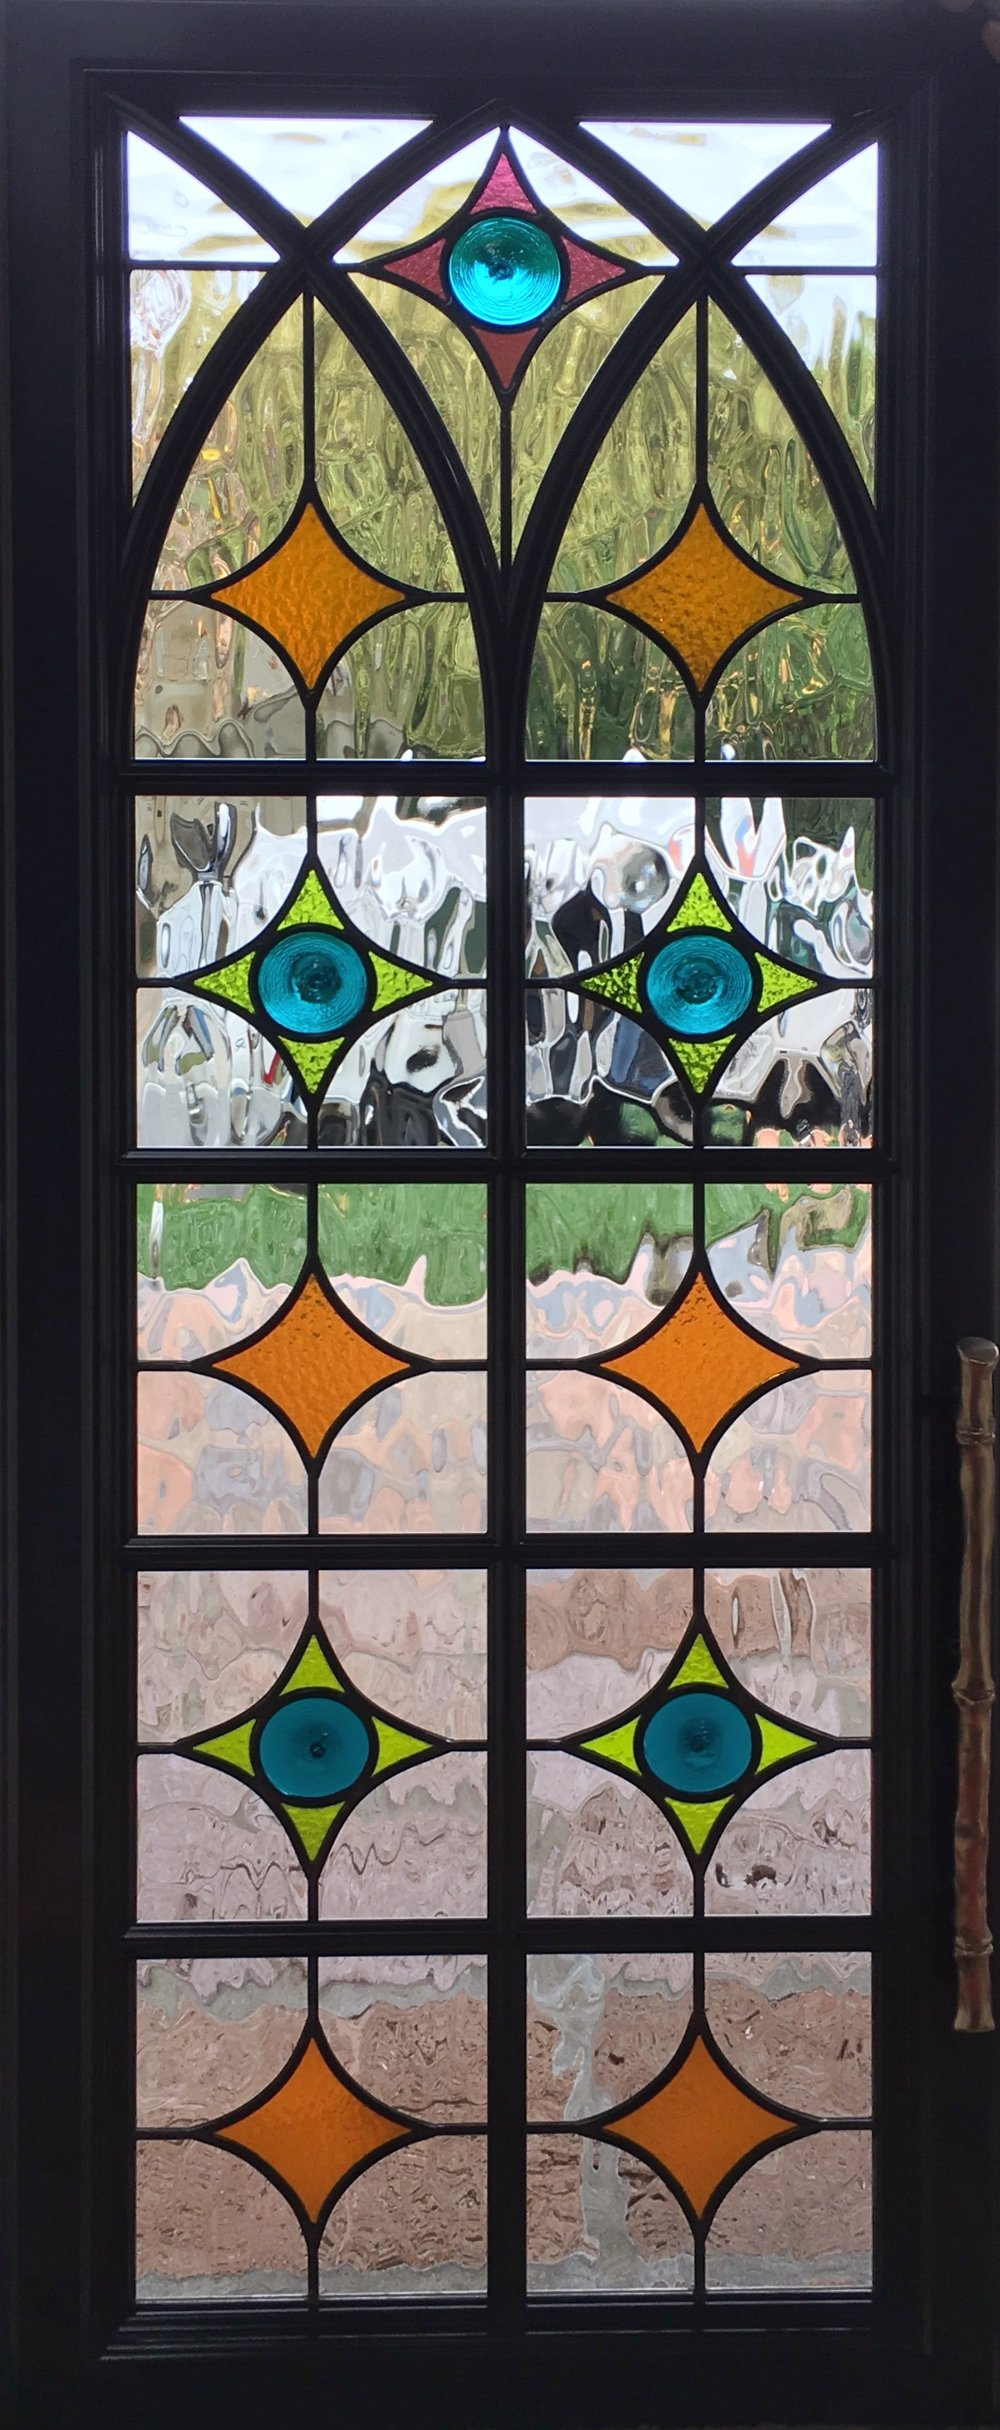 traditional pattern geometric classic design rondel spanish design gothic arched cabinet door leaded glass stained glass legacy glass atherton san jose menlo park san francisco california.jpg